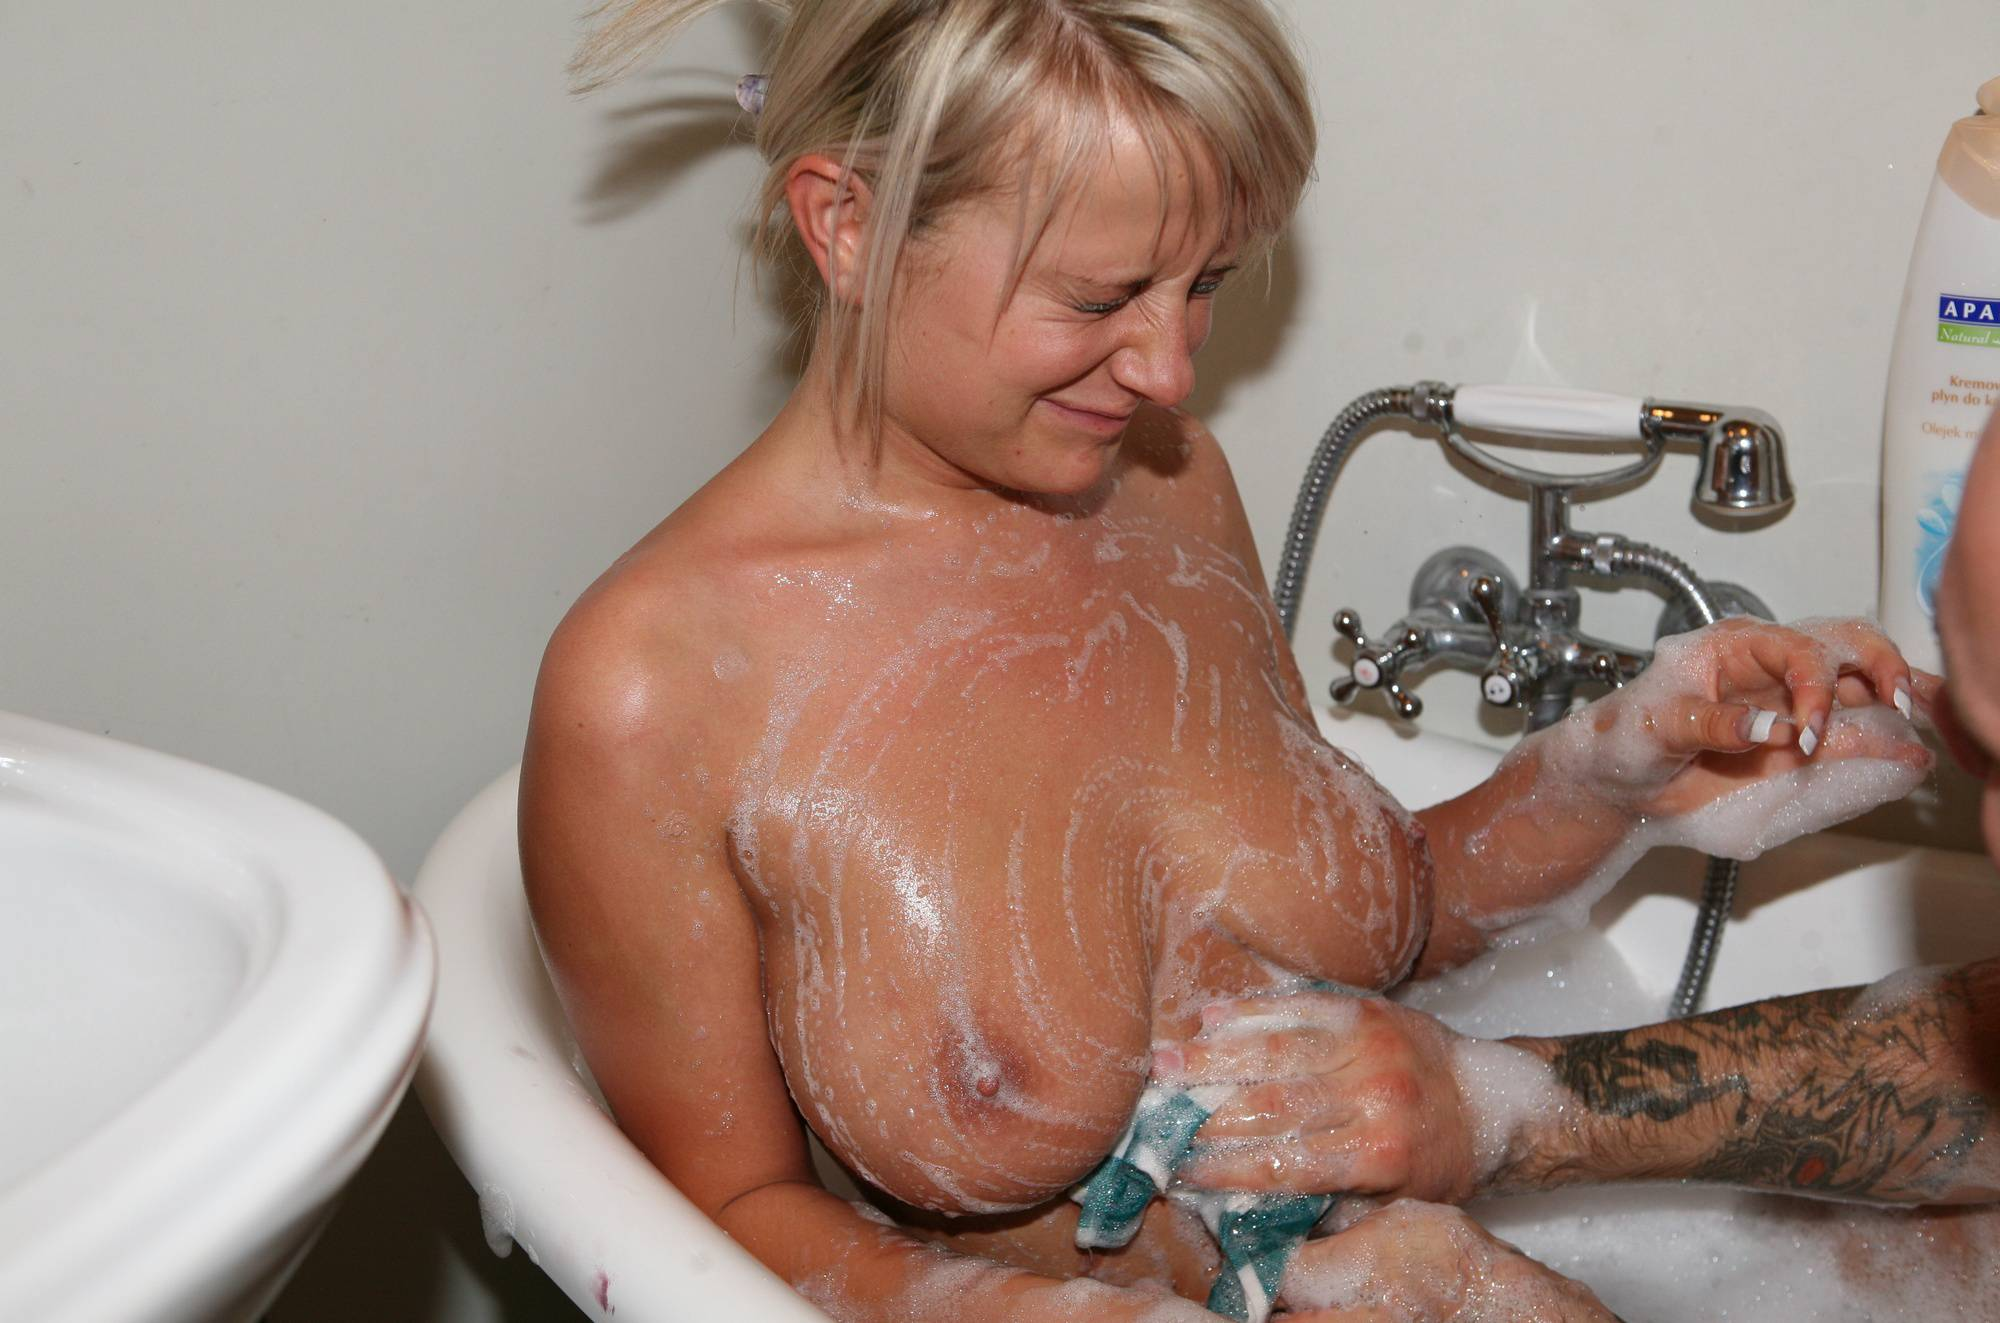 Nudist Photos Bodypaint Bath Fun - 1